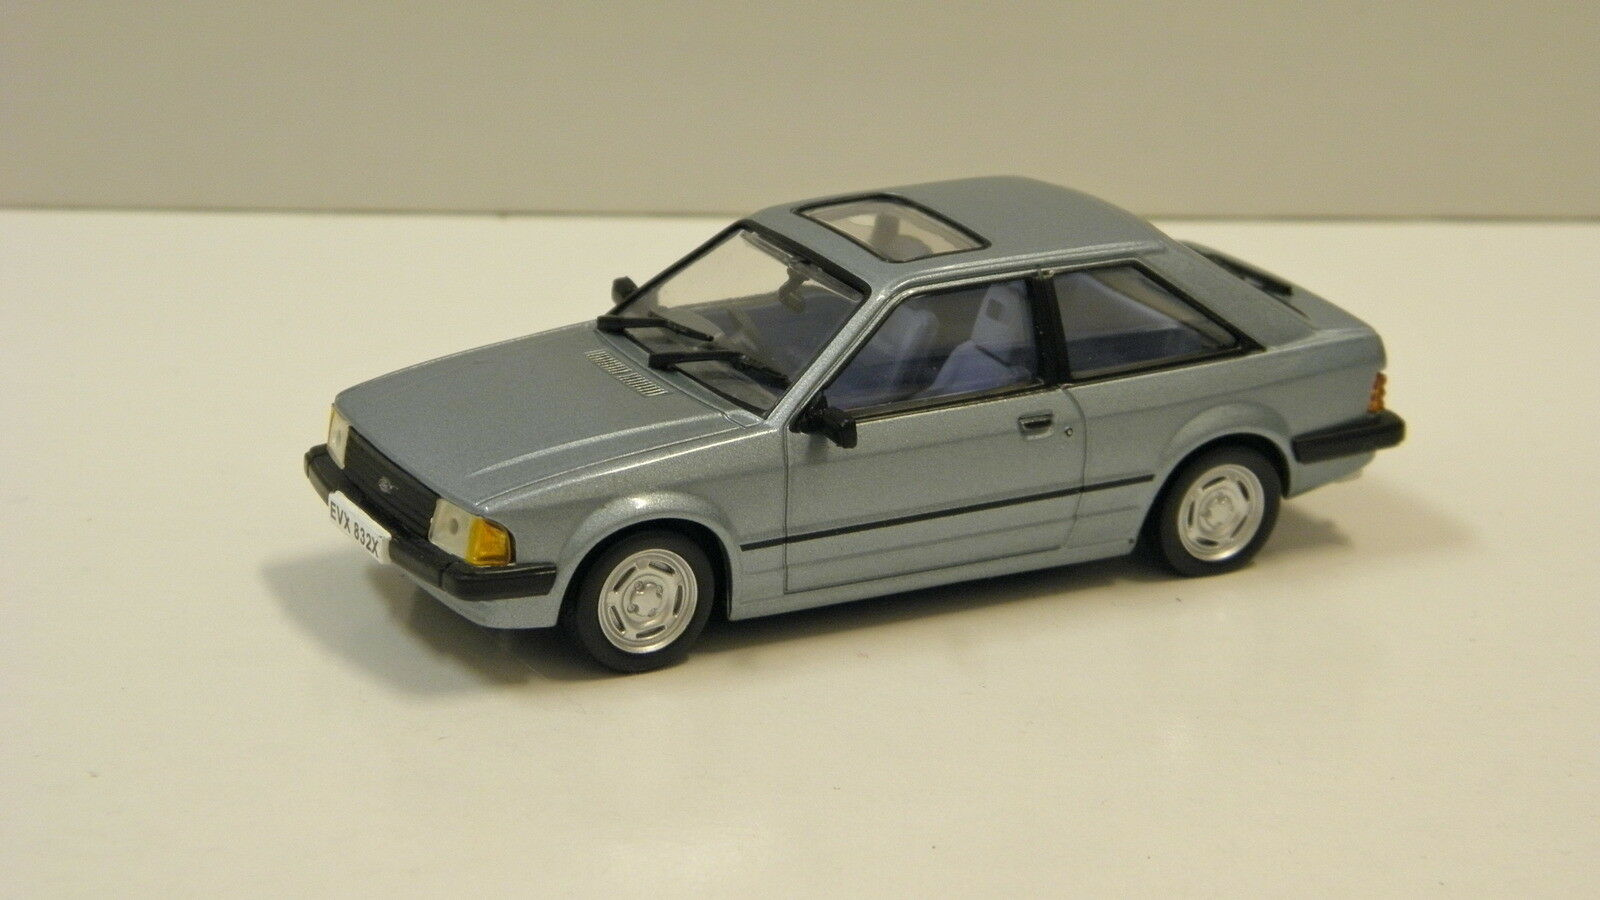 1 43 1981 Ford Escort Mk3 GL (Artic bluee) Vitesse 24832R